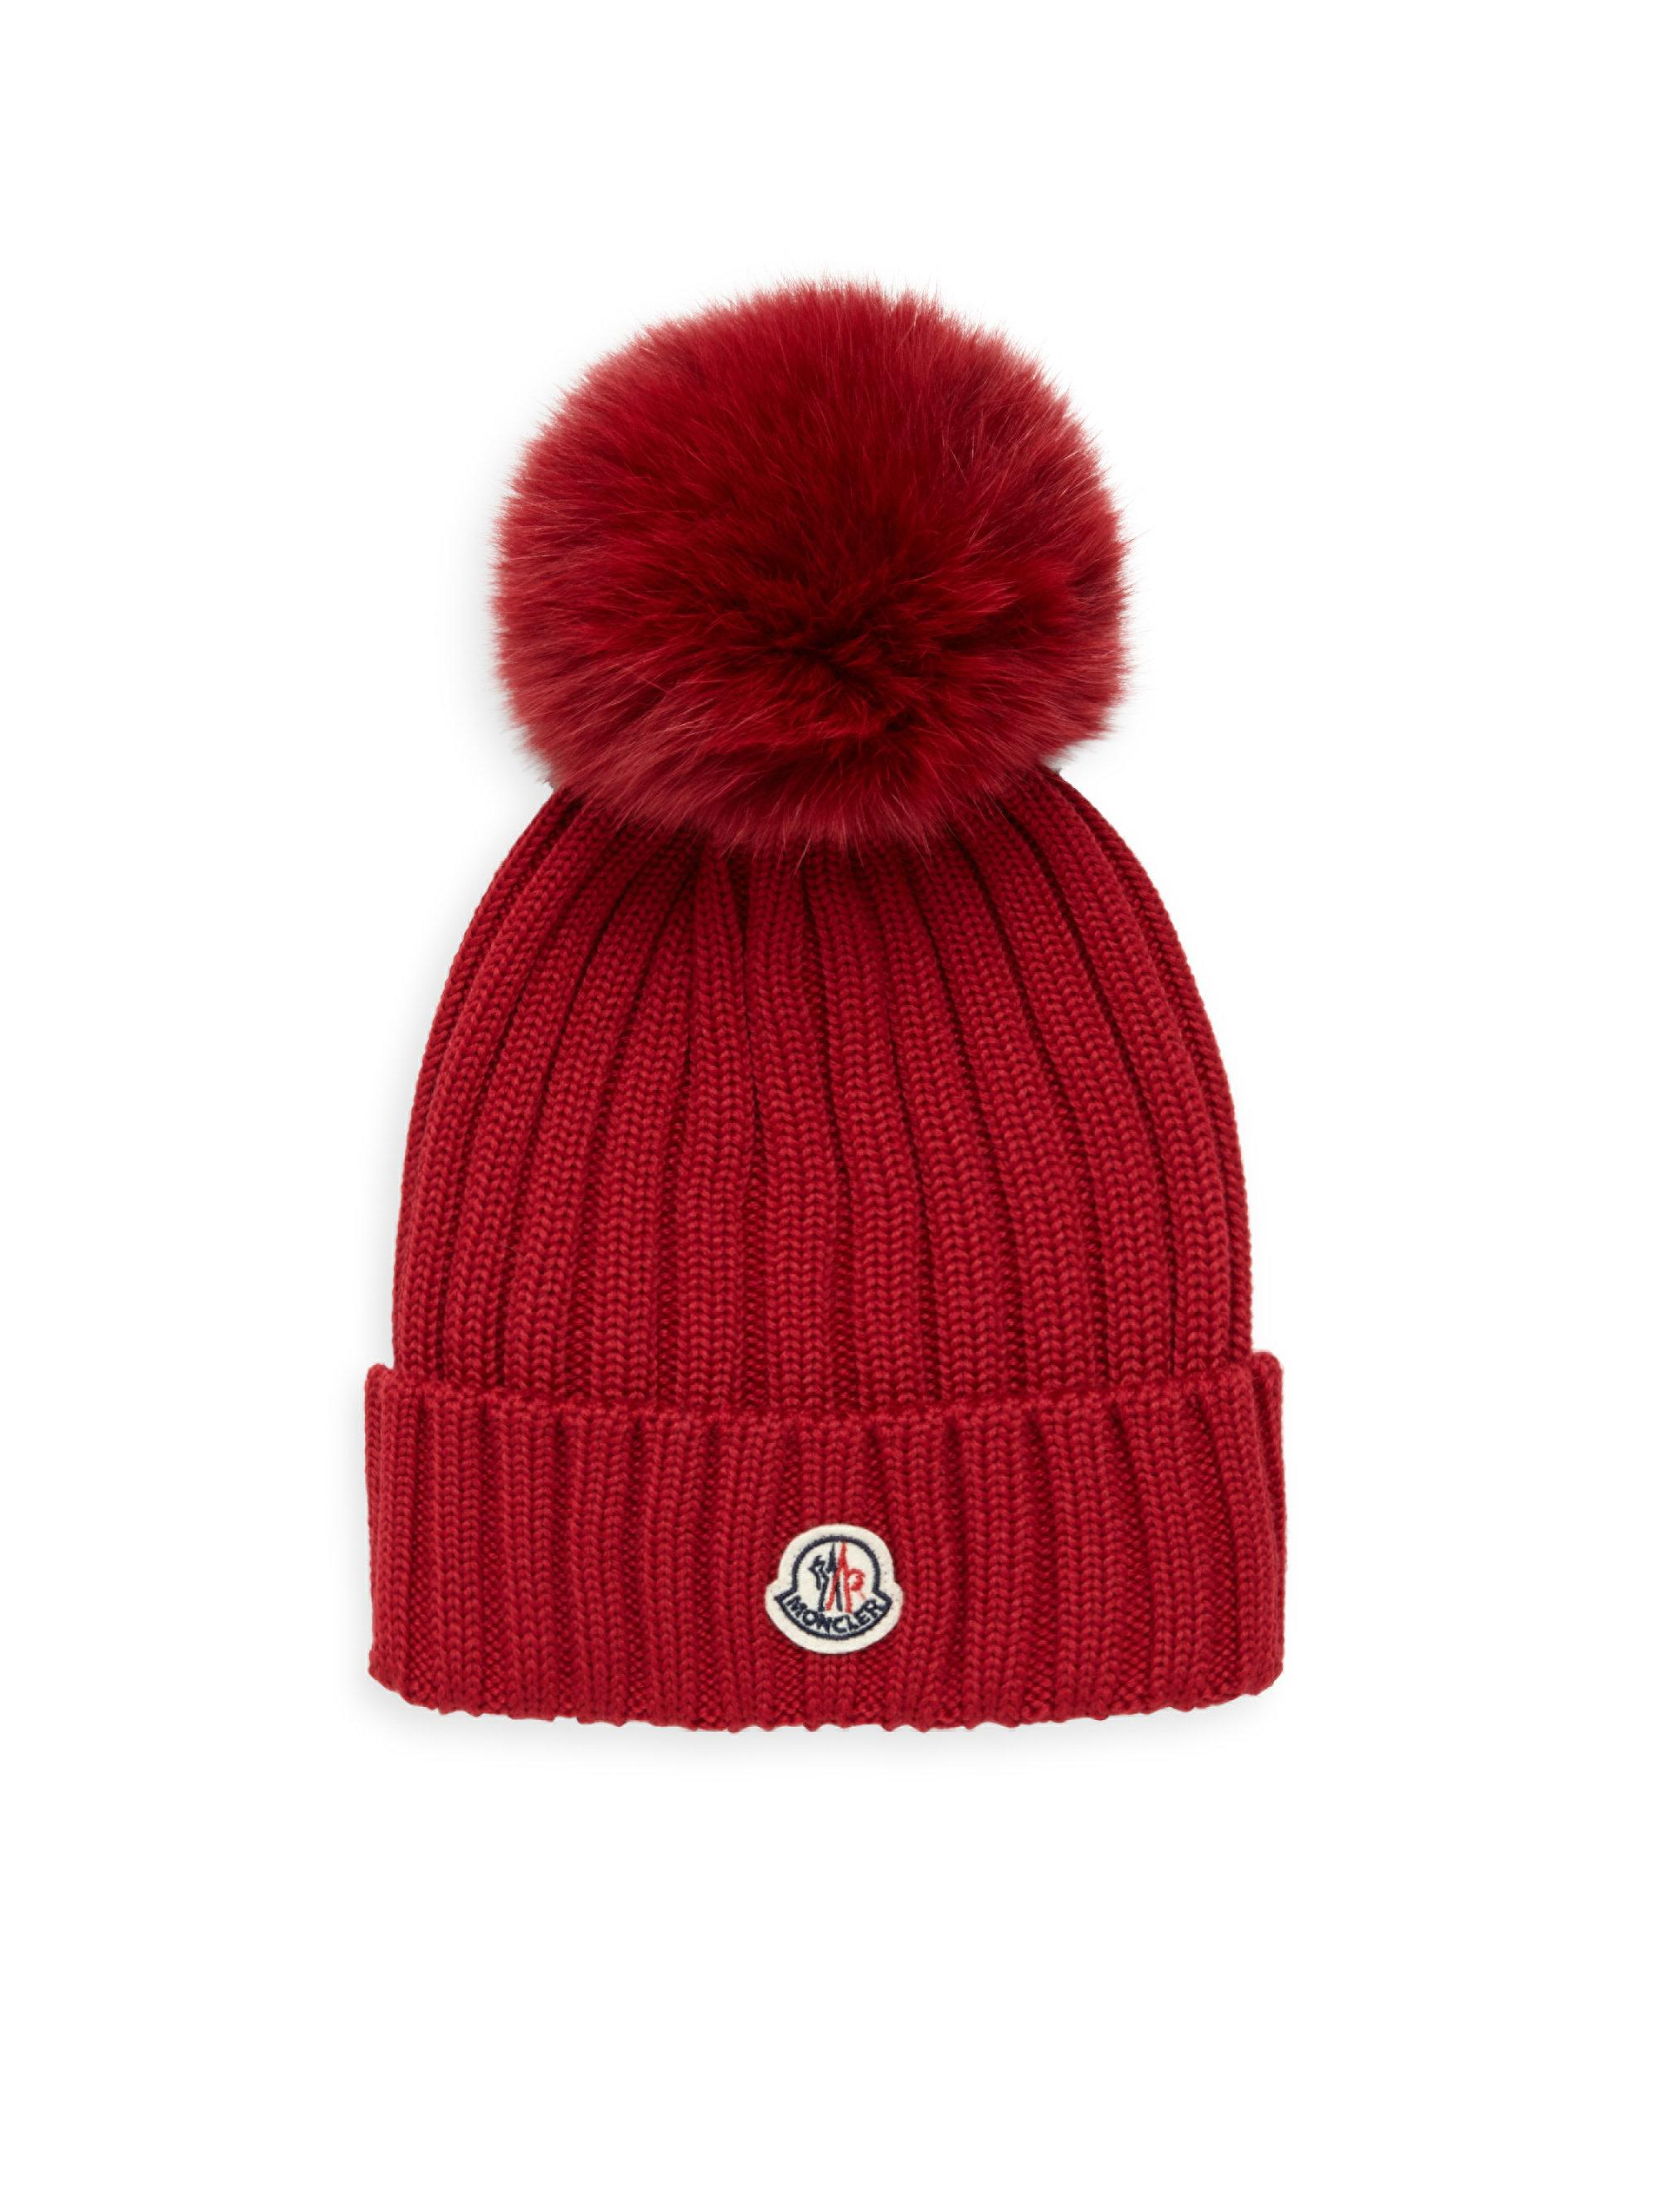 Moncler Berretto Fur Pom Hat in Red - Lyst 5bc5e1d8bb99